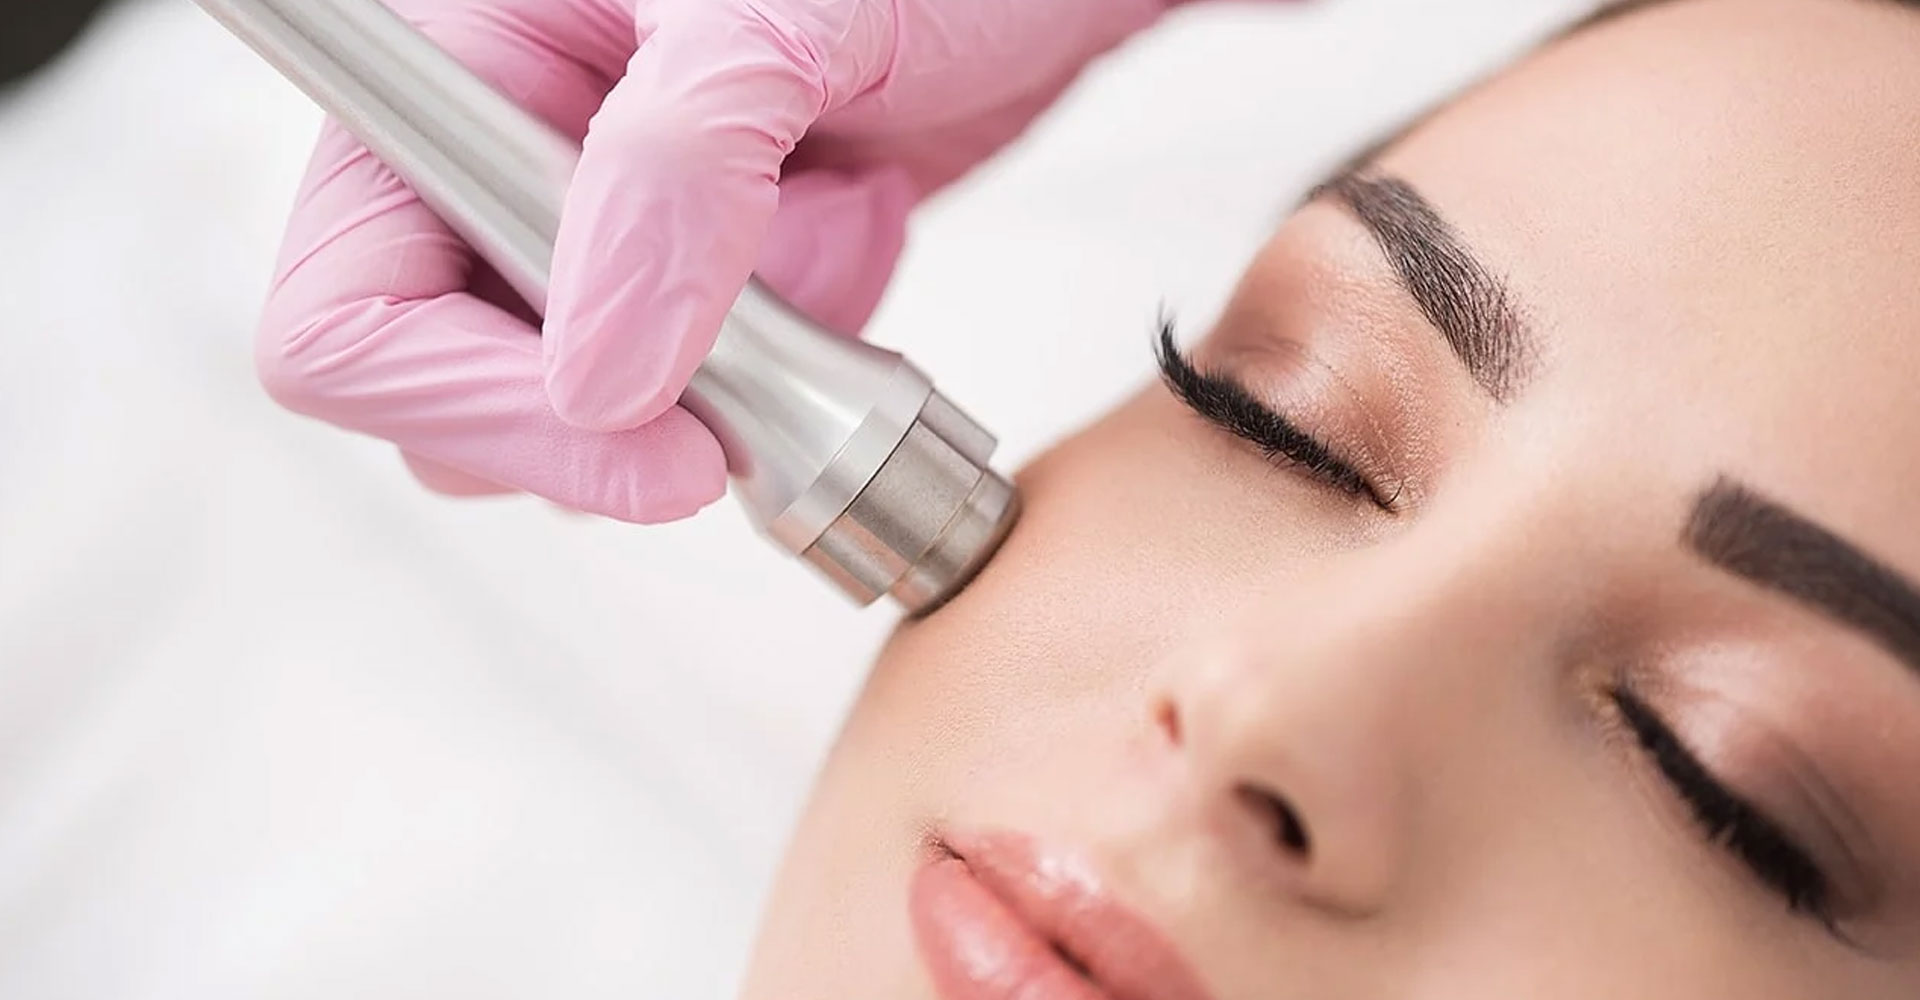 Microdermabrasion Treatment for Glowing and Smooth Skin